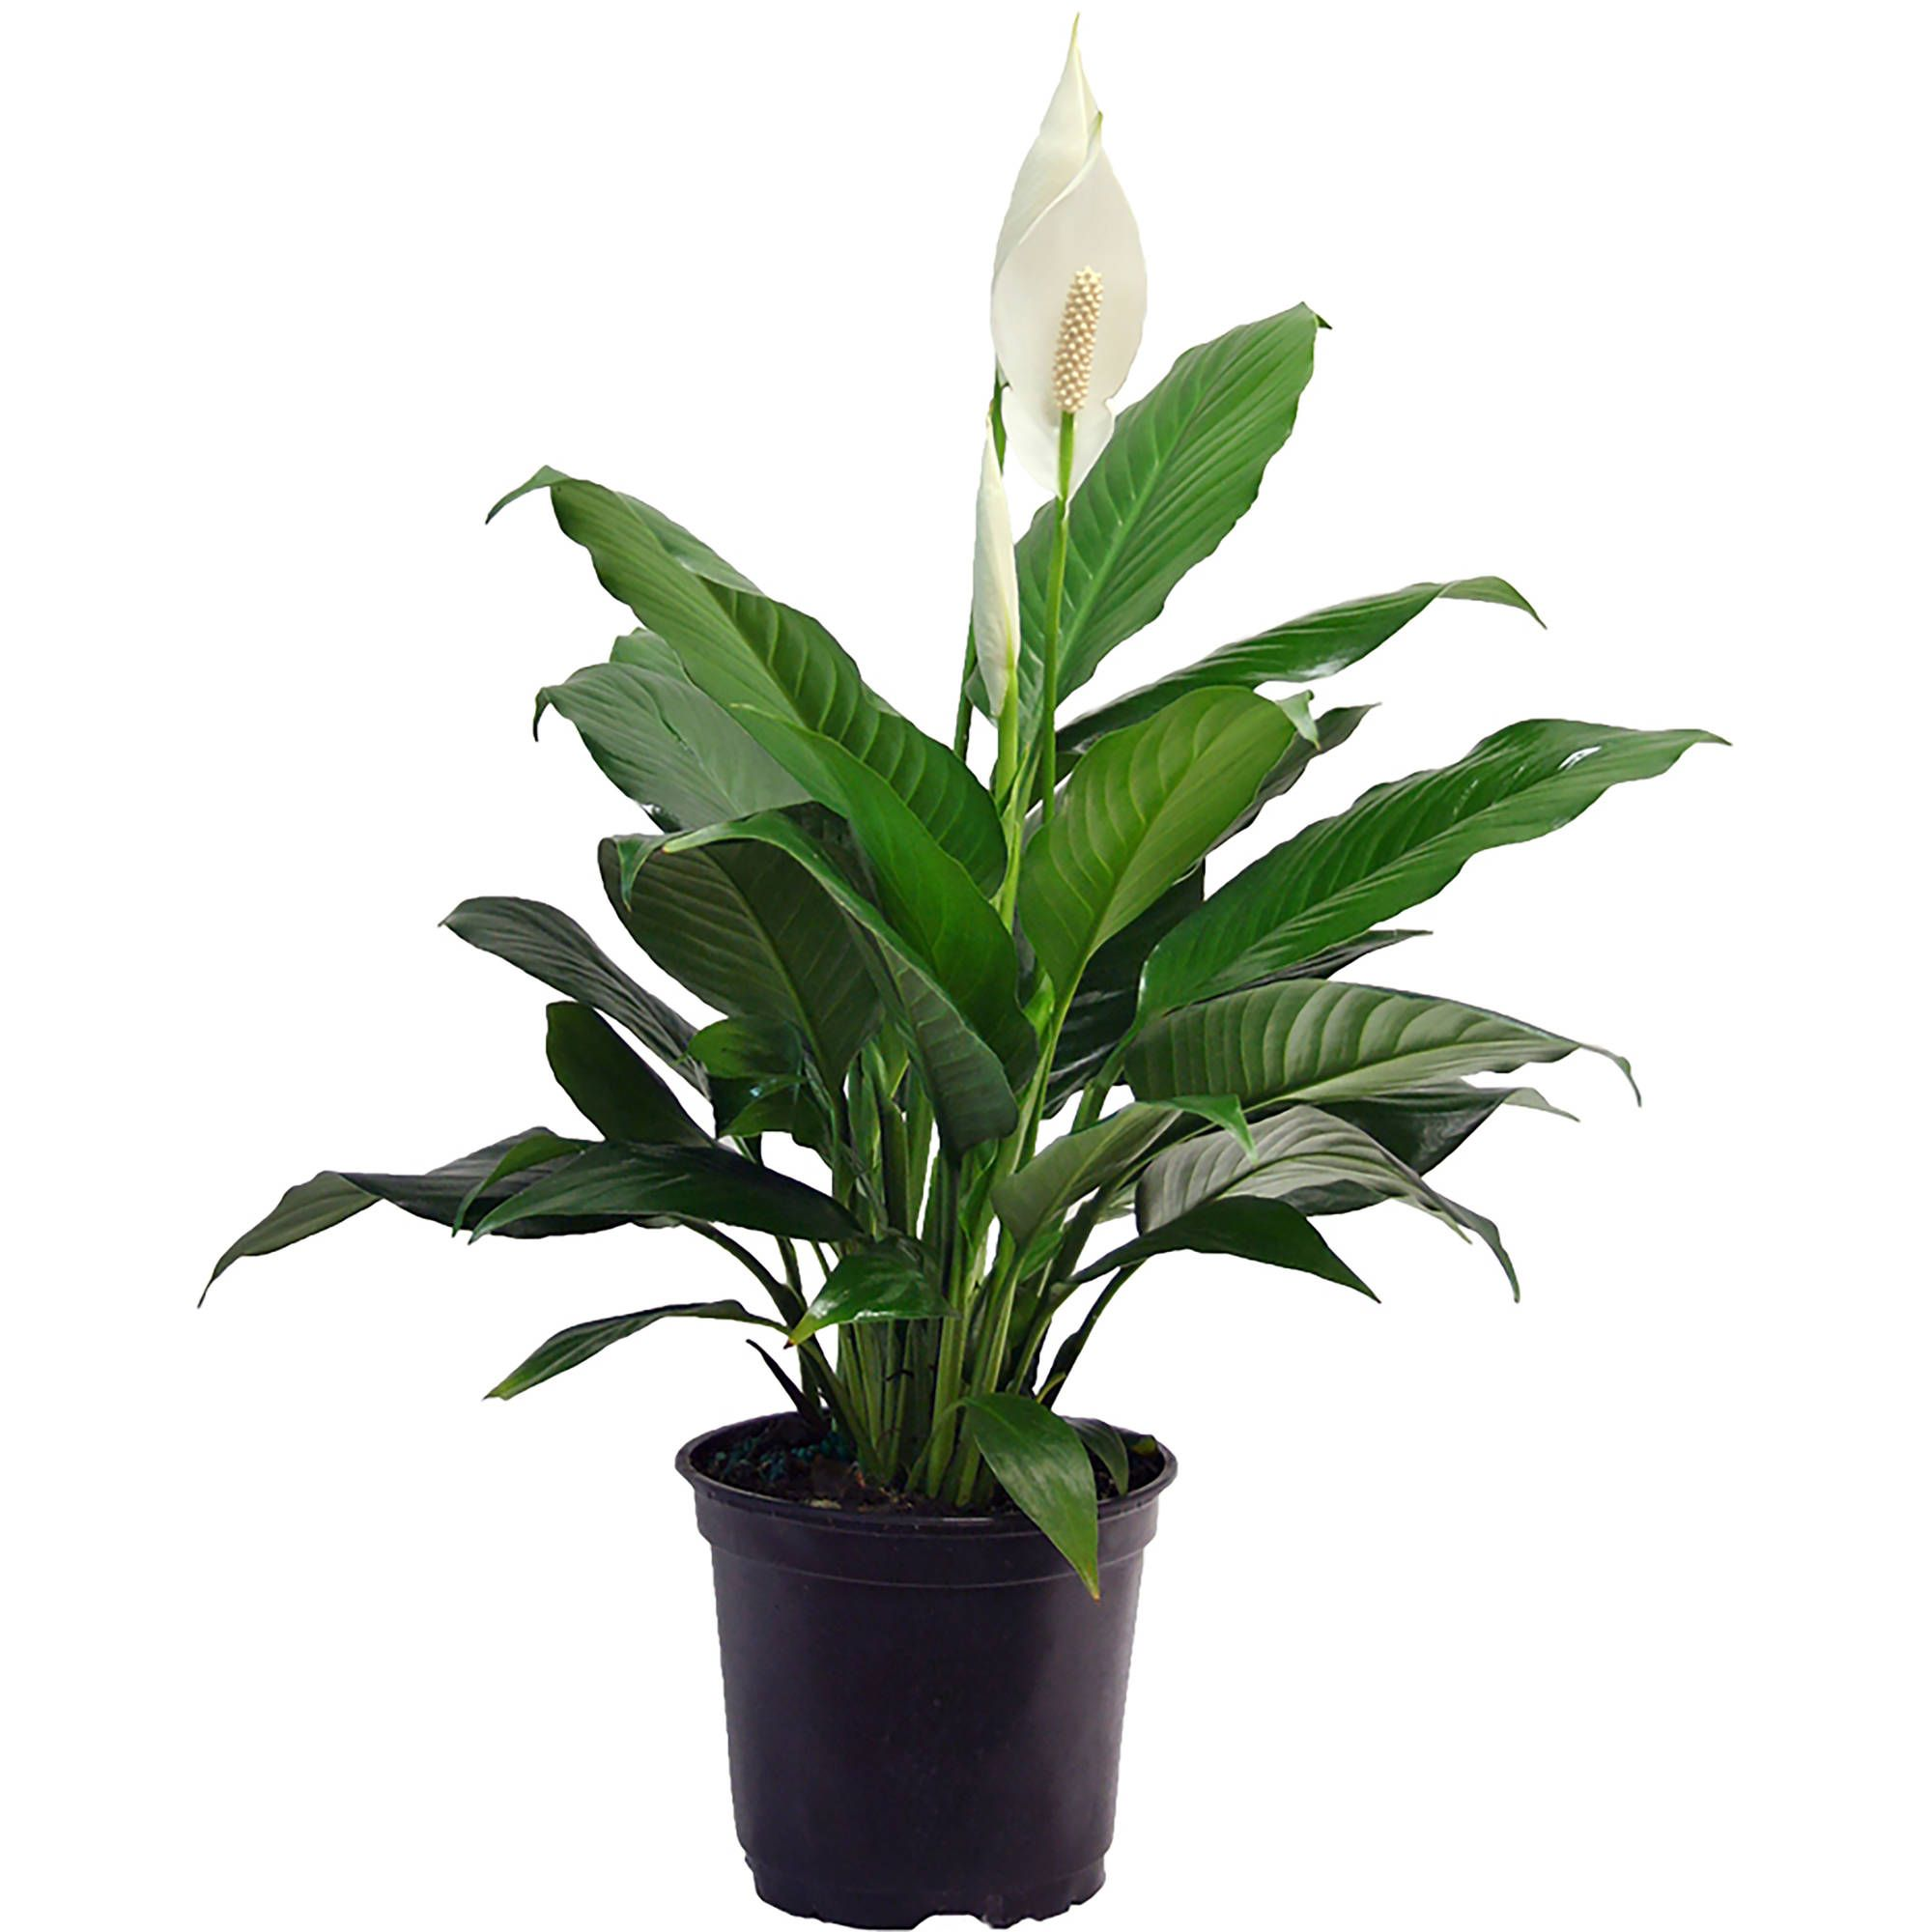 10 13 17 Common Name Peace Lily Scientific Name Spathiphyllum Wallisii Season Summer And Spring Temps Above Lily Plants Peace Lily Plant Live Indoor Plants